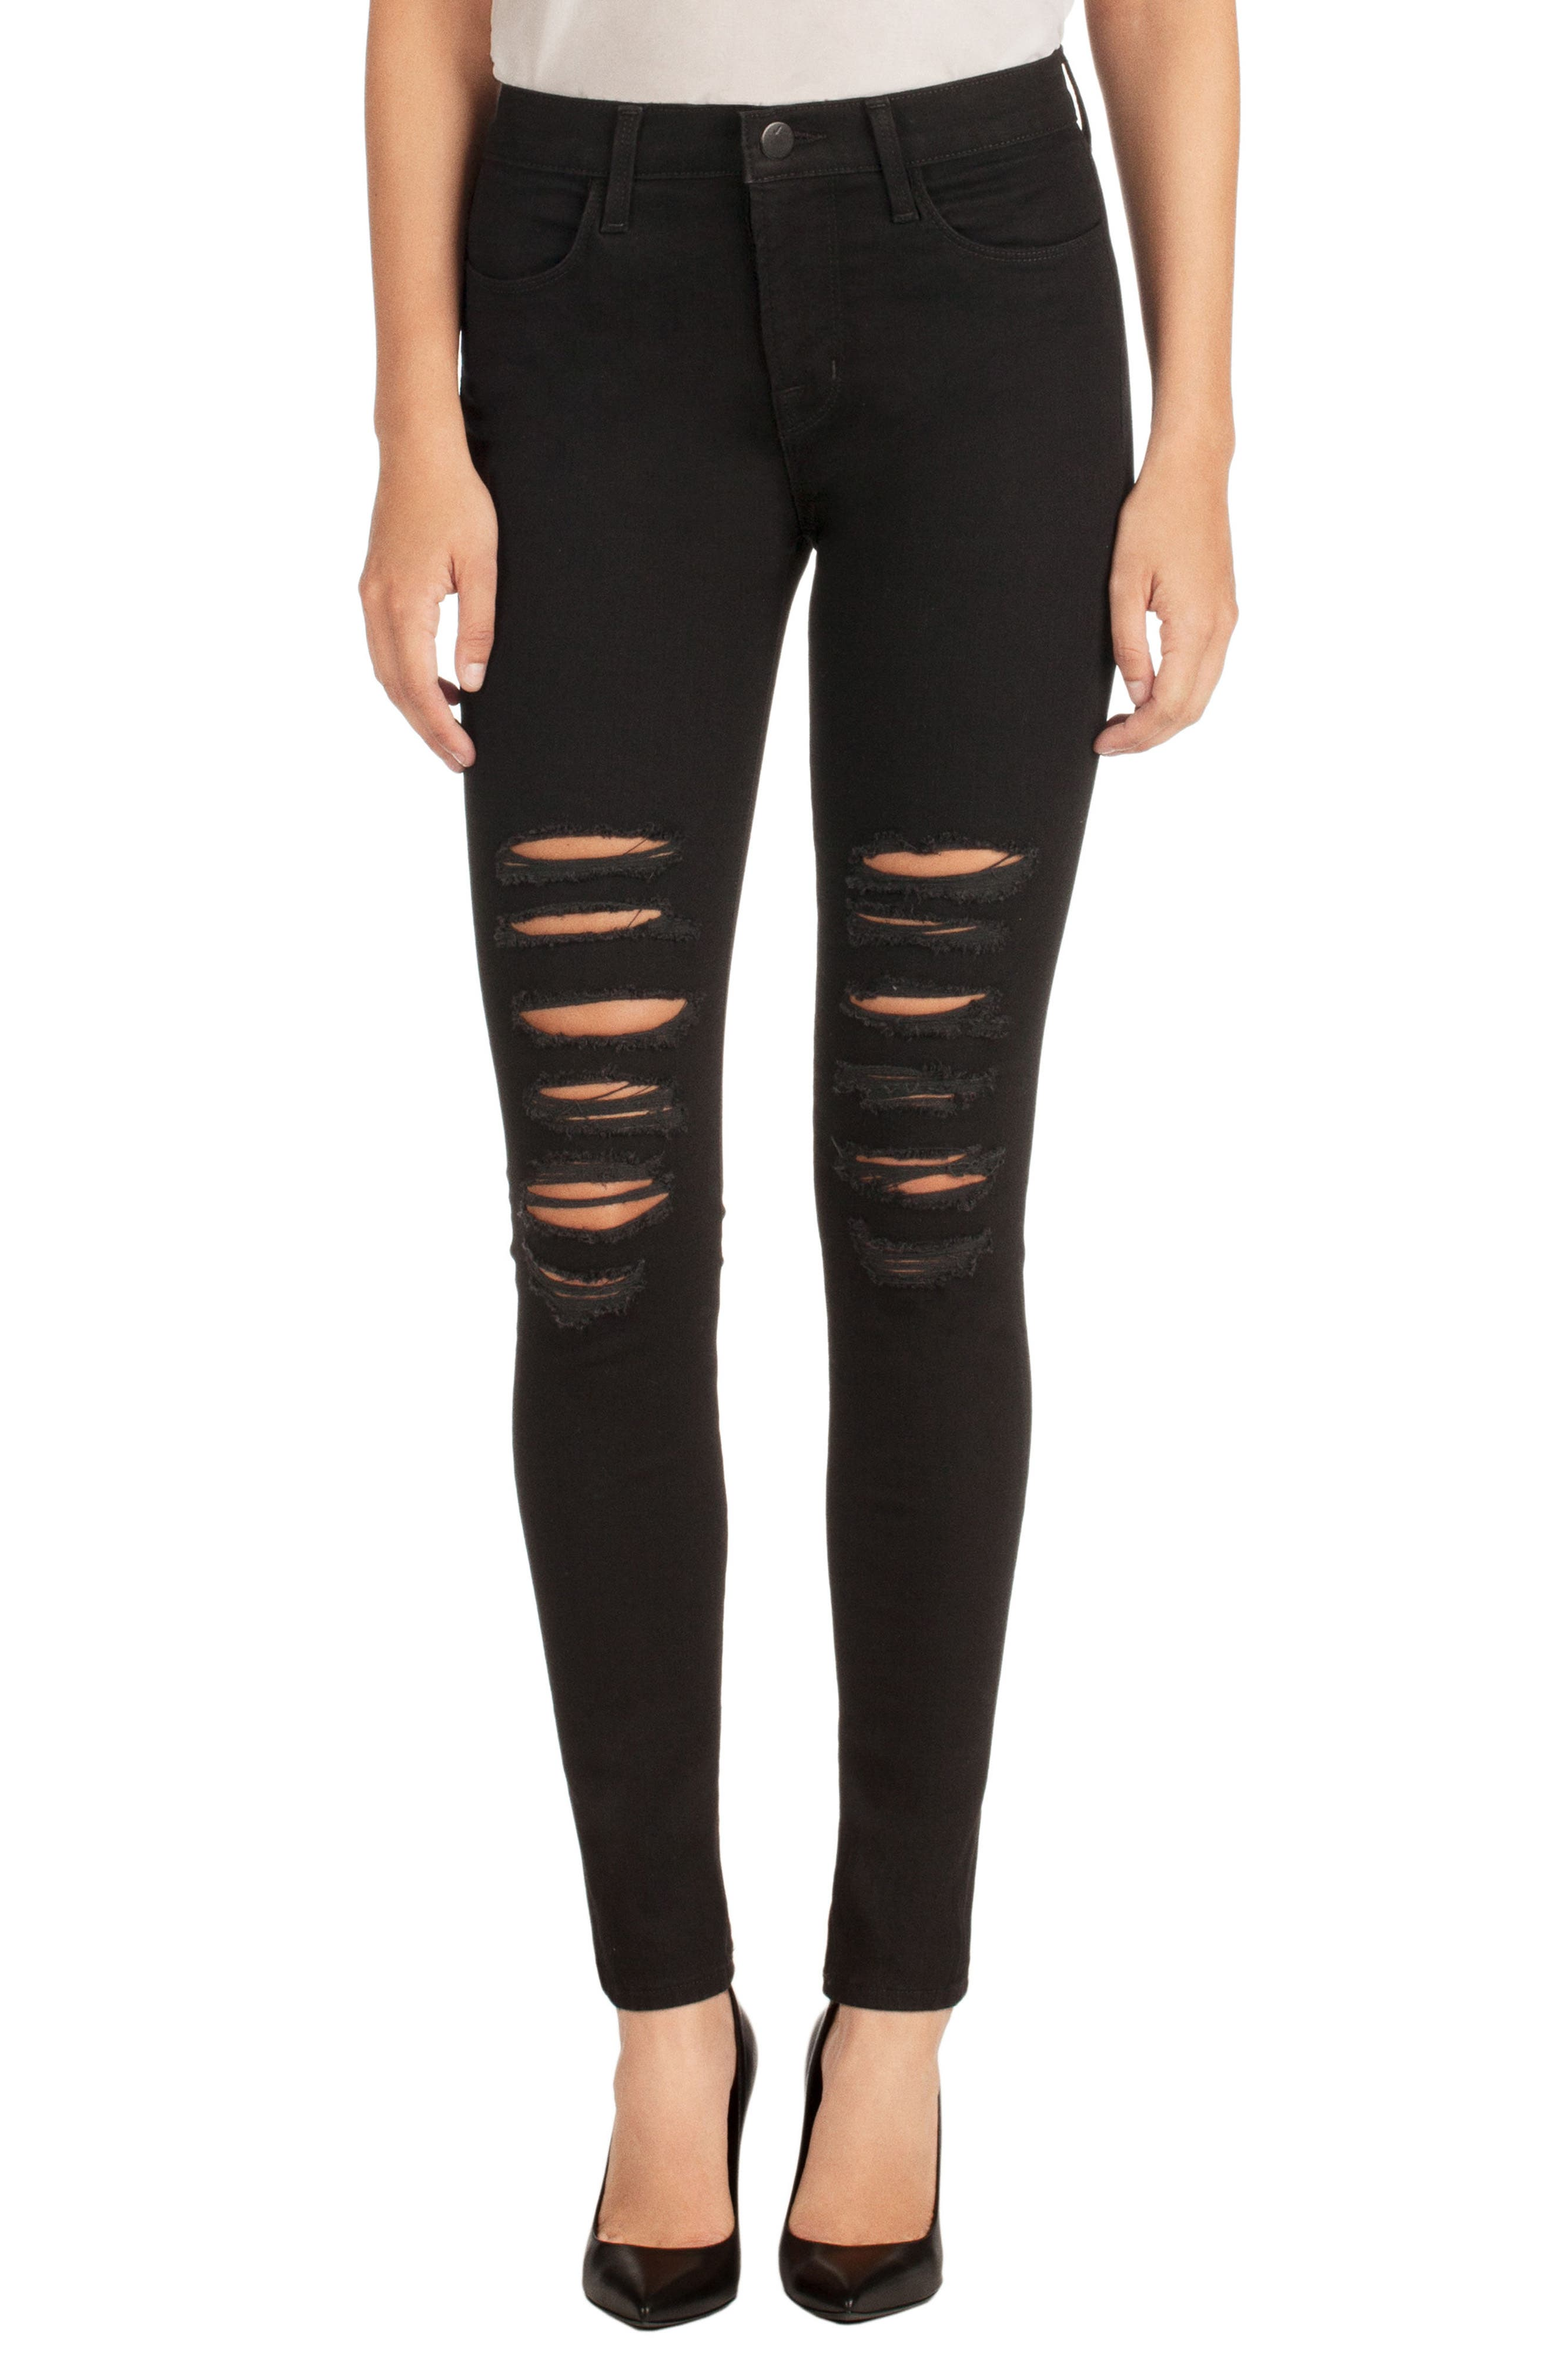 Maria Ripped High Waist Skinny Jeans,                         Main,                         color, Blk Heart